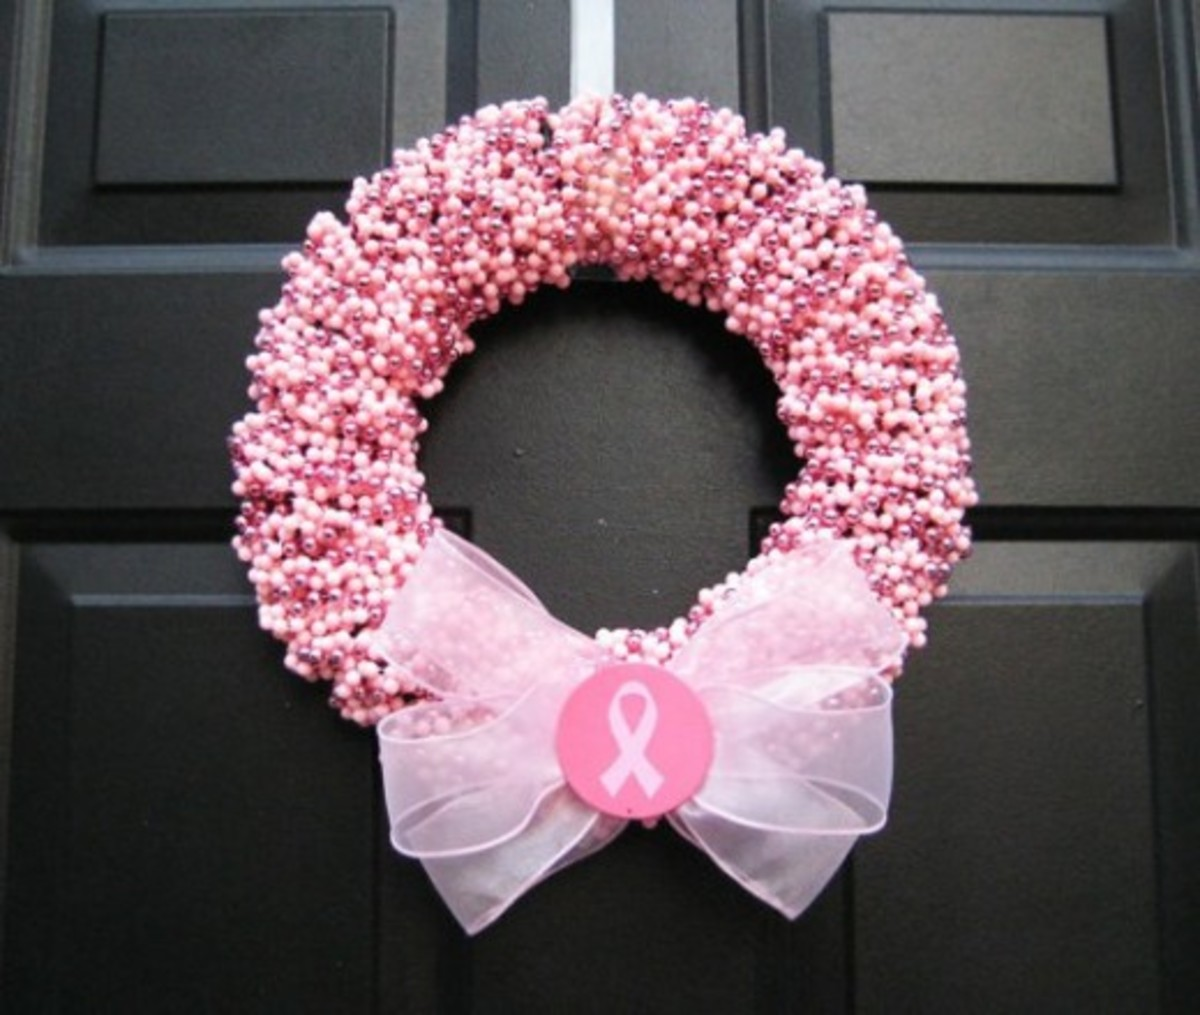 A pink wreath that can be sold in a silent auction or craft fair